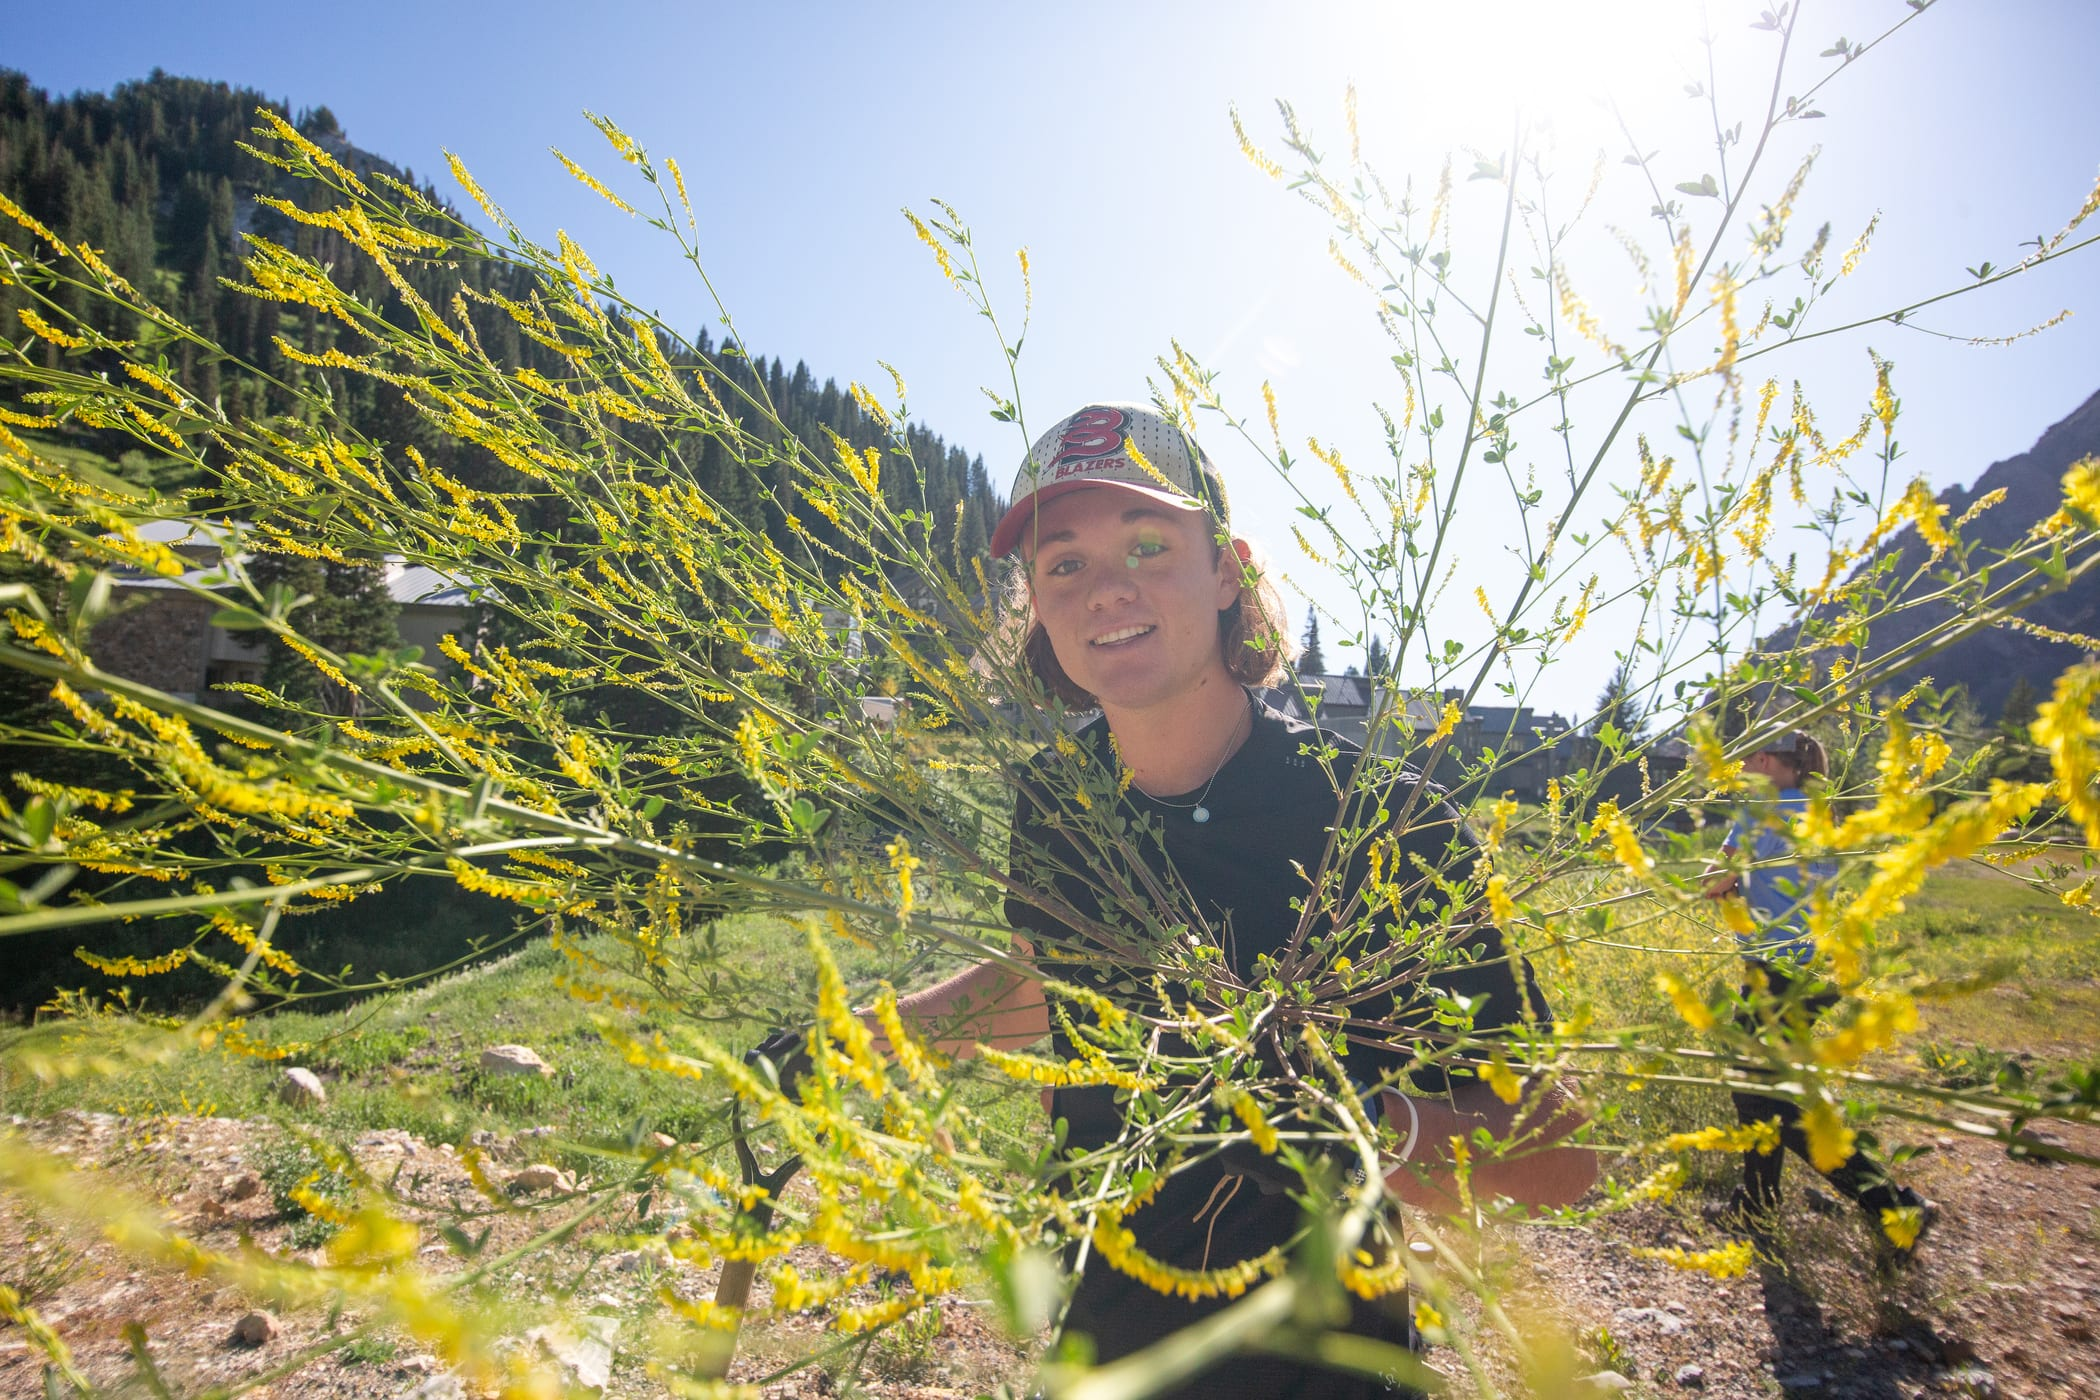 Noxious Weed removal at Alta Ski Area